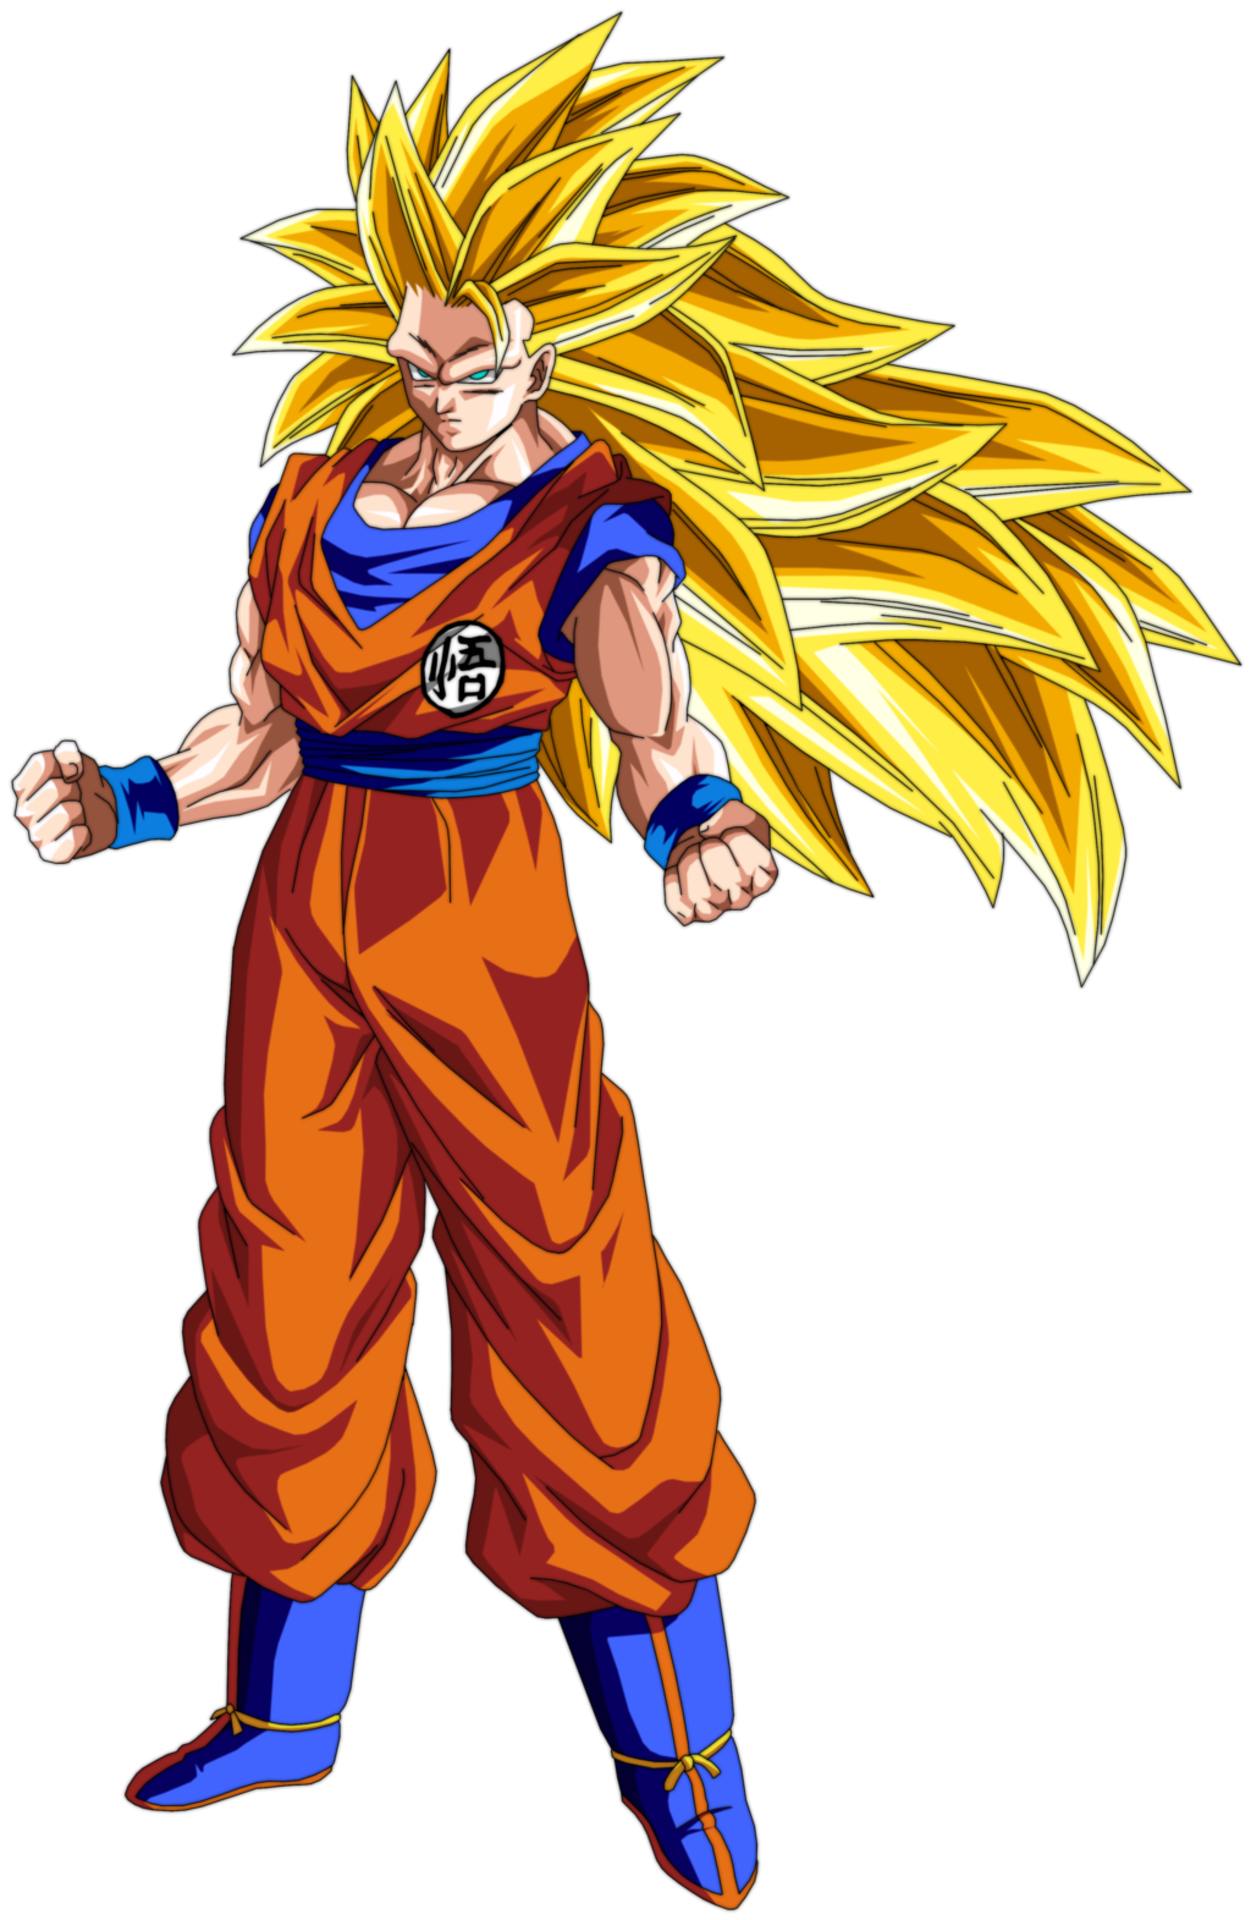 Super Dragon Ball Goku.